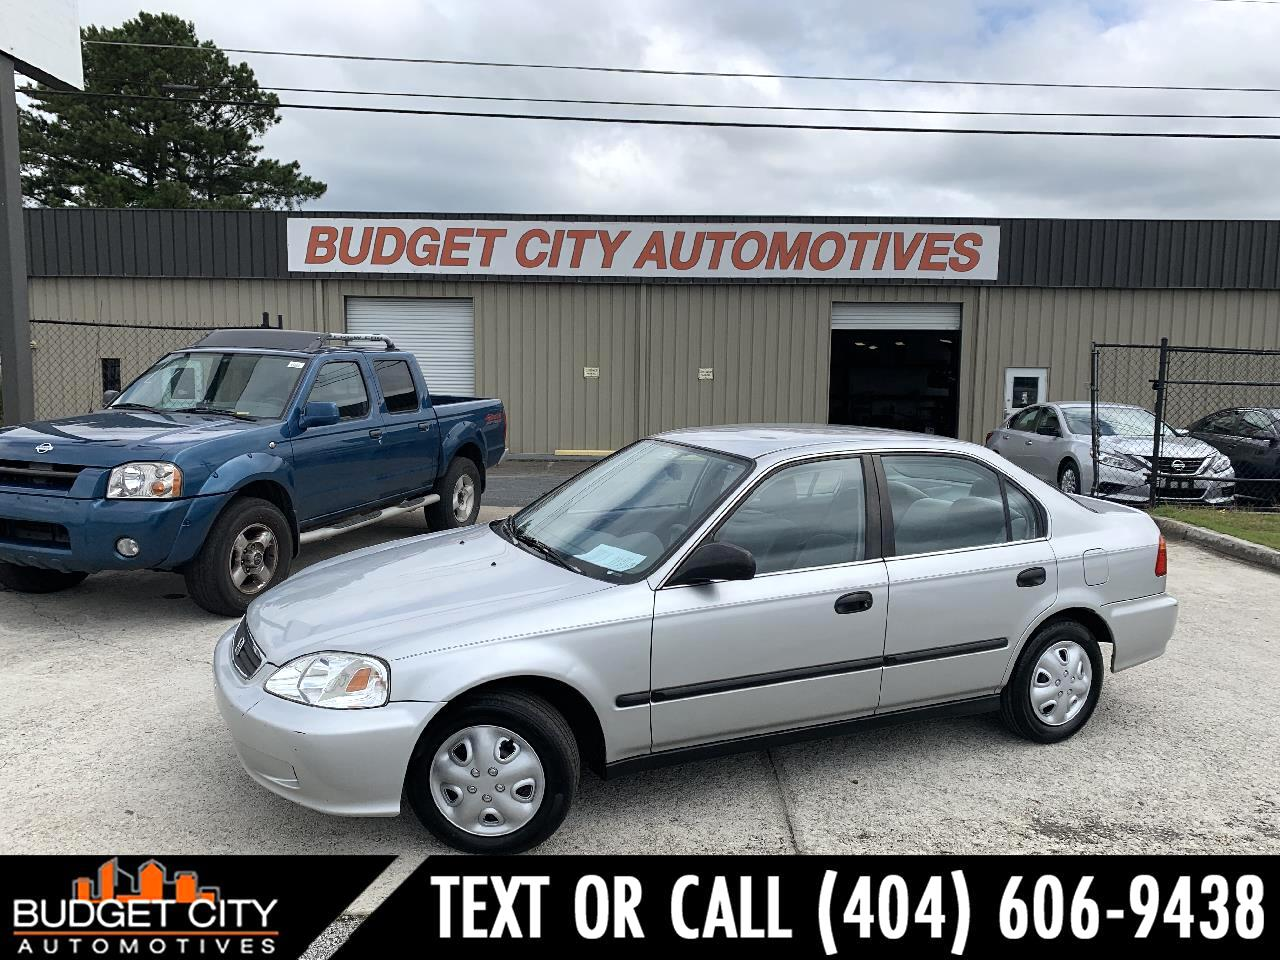 1999 Honda Civic LX sedan